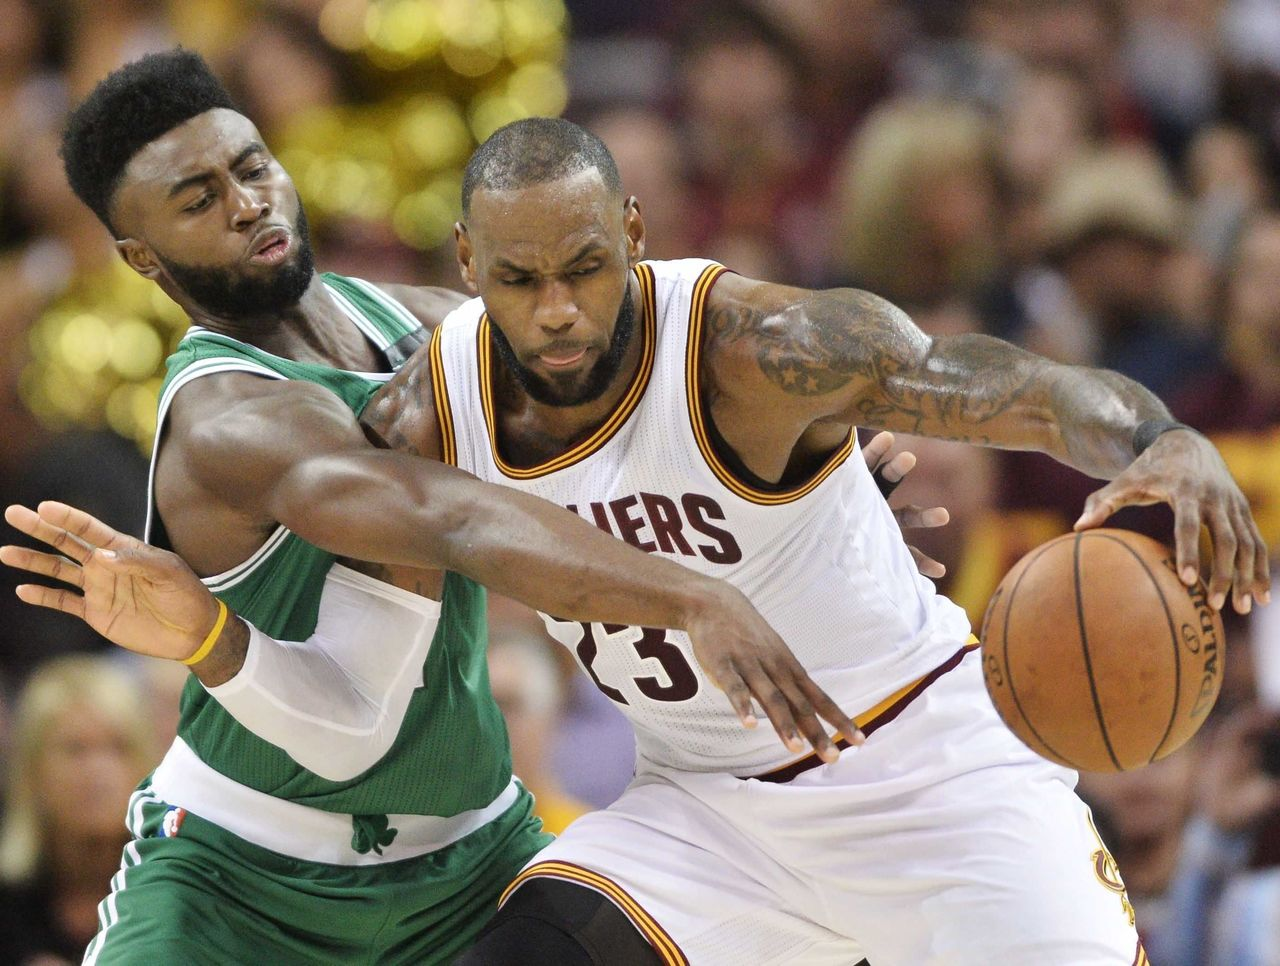 Cropped 2017 05 22t015225z 2111088090 nocid rtrmadp 3 nba playoffs boston celtics at cleveland cavaliers